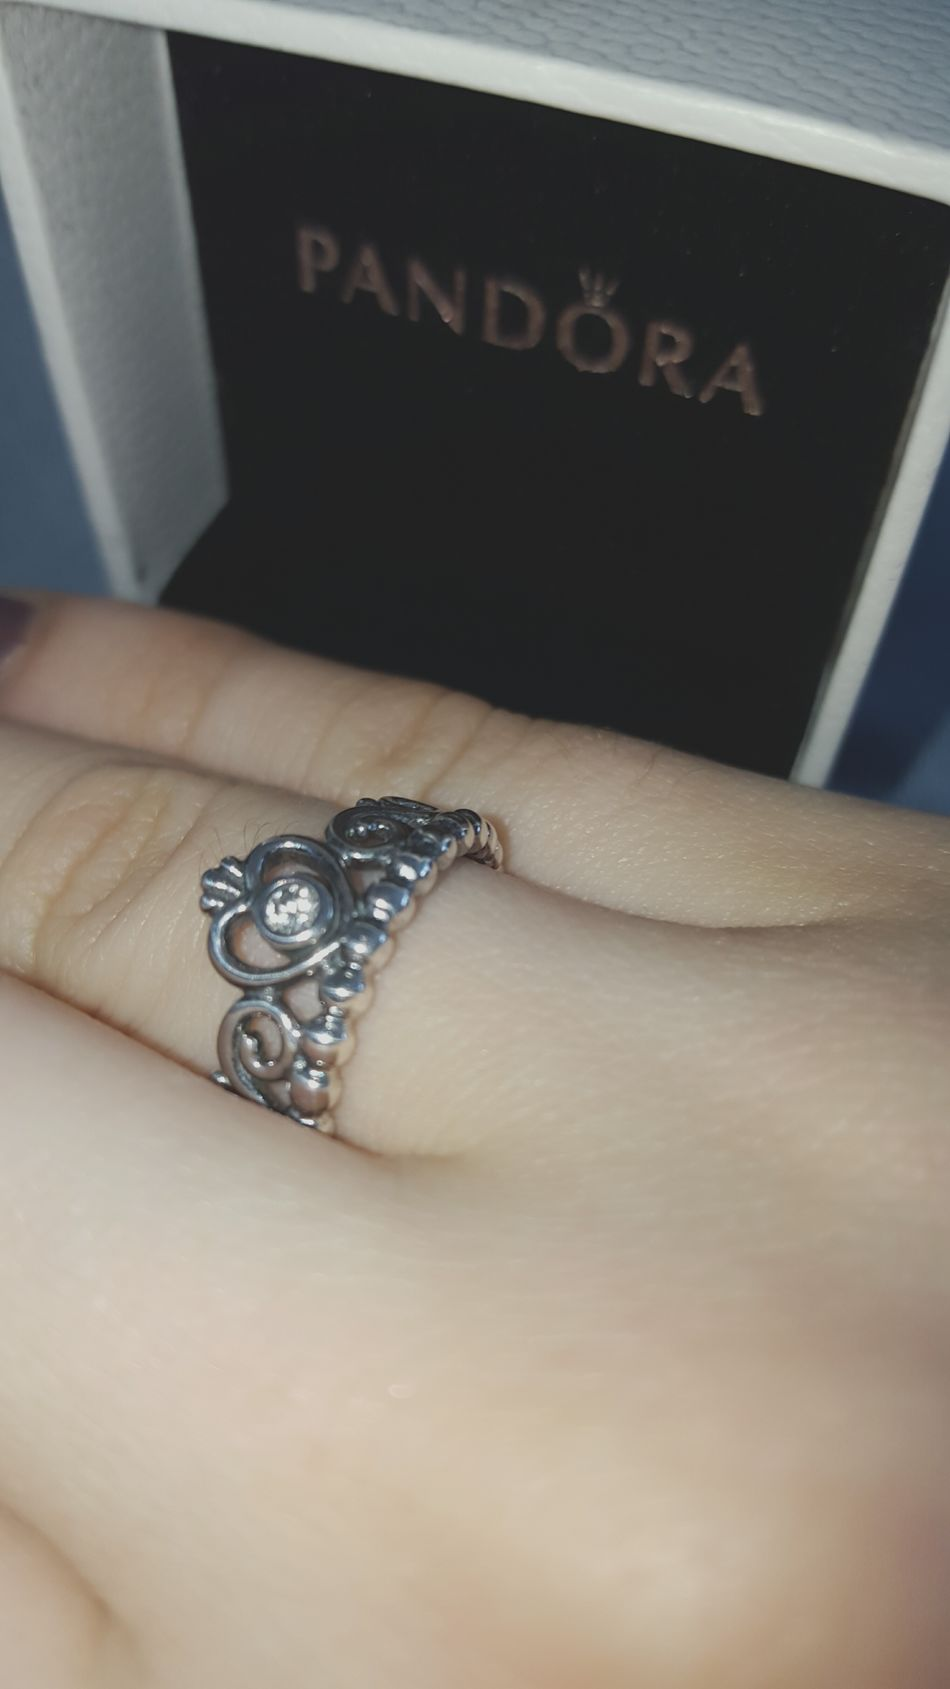 finally i get it thank you mom ❤ Ring Pandora Princess Pandora Ring Princess Ring For My 16th Bday ~9 Months Later So Happy Thank You Thank You ❤ she buys me it today for my 16th bday, it was ~ 9 months ago but idkw we buy it today ...